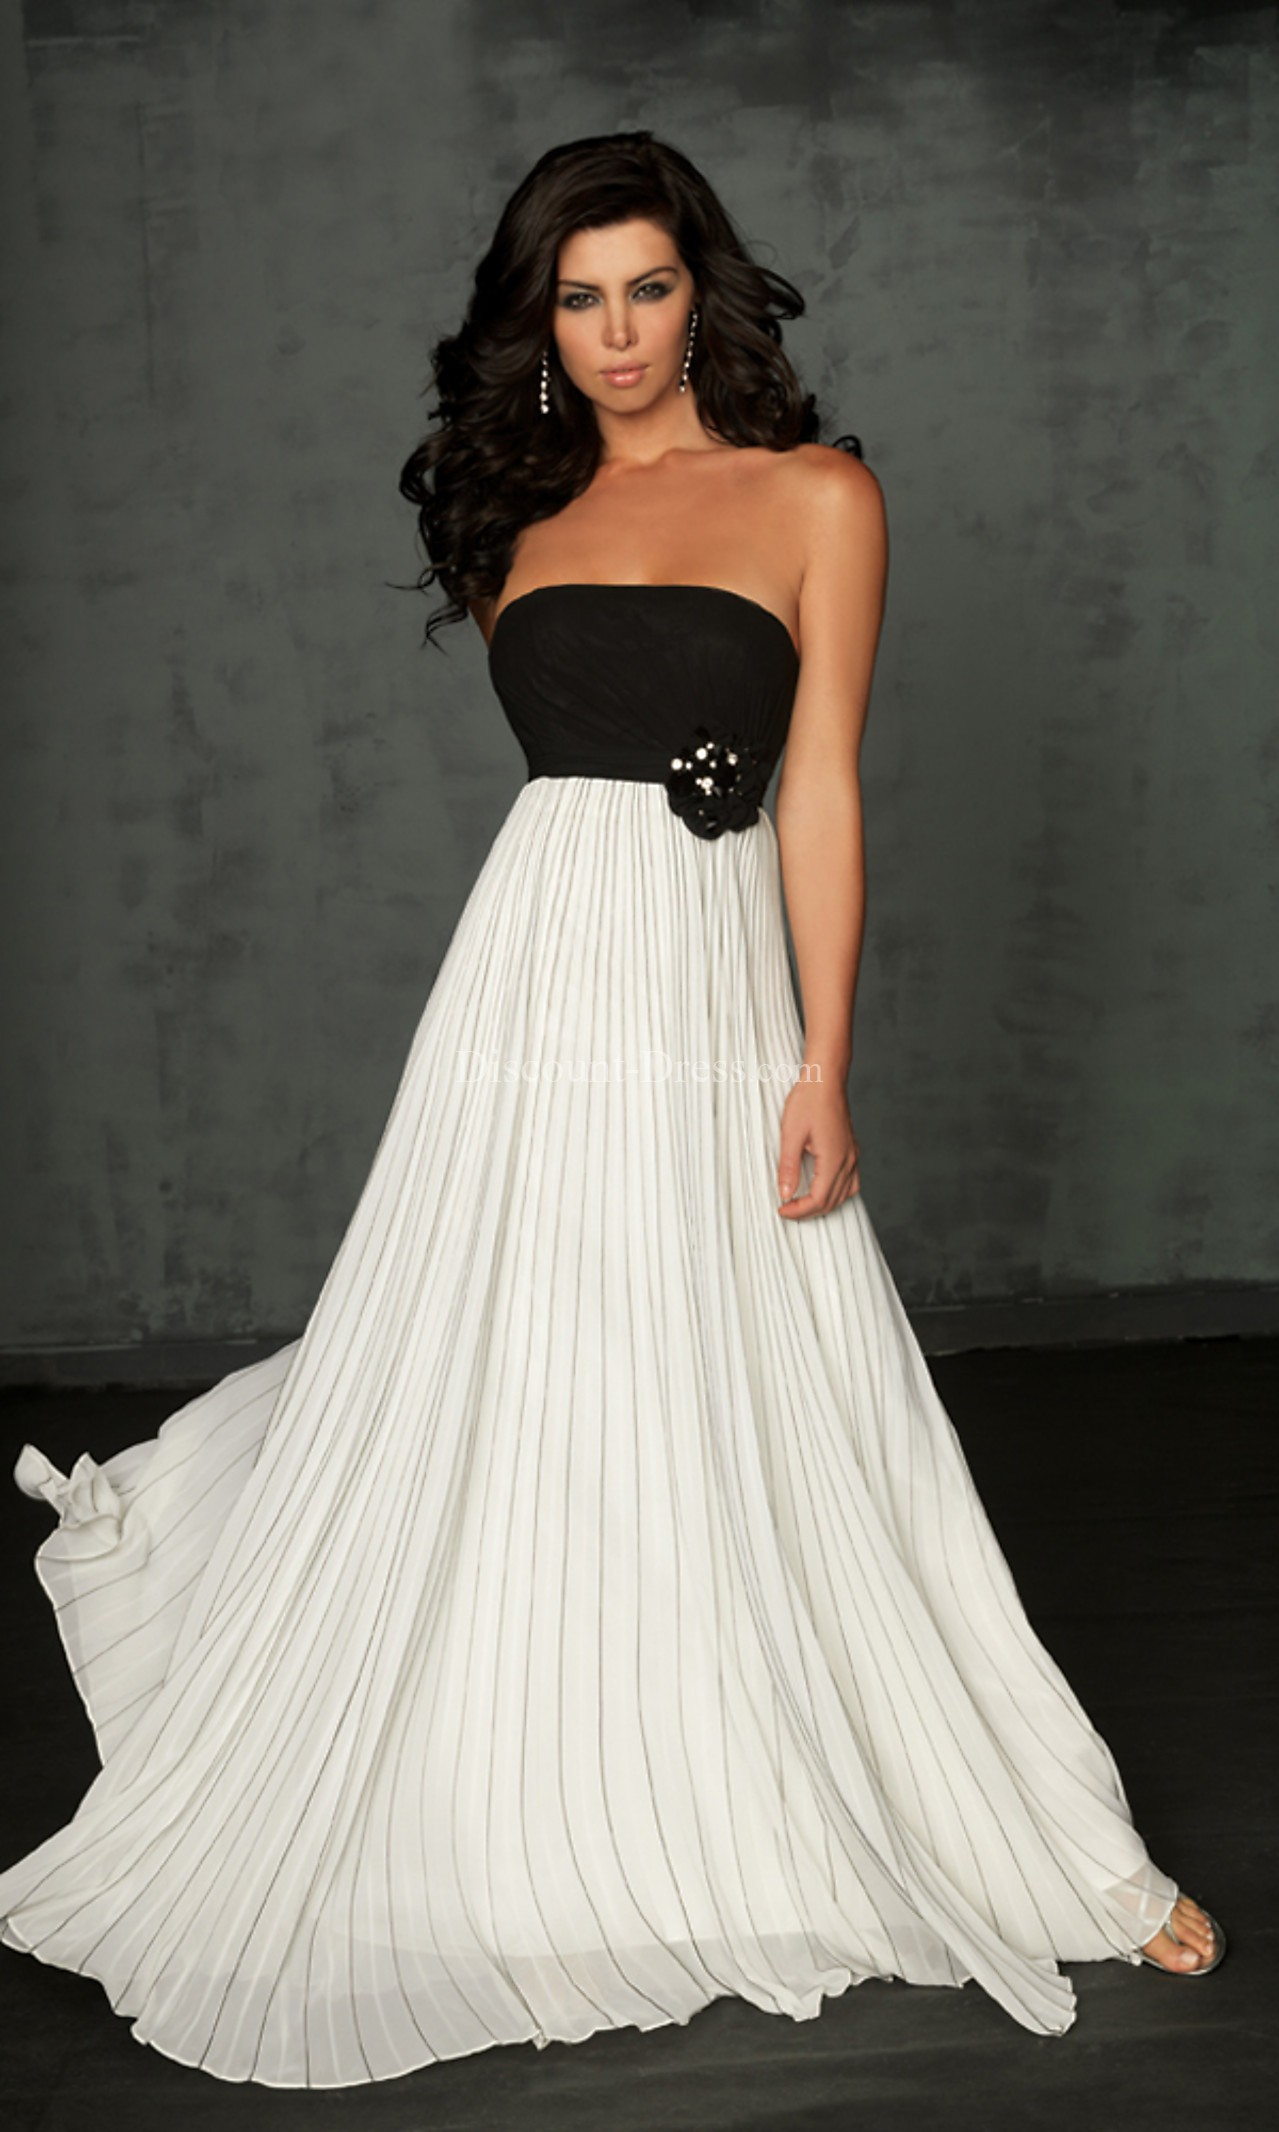 Black and white formal dresses for juniors - Style Jeans